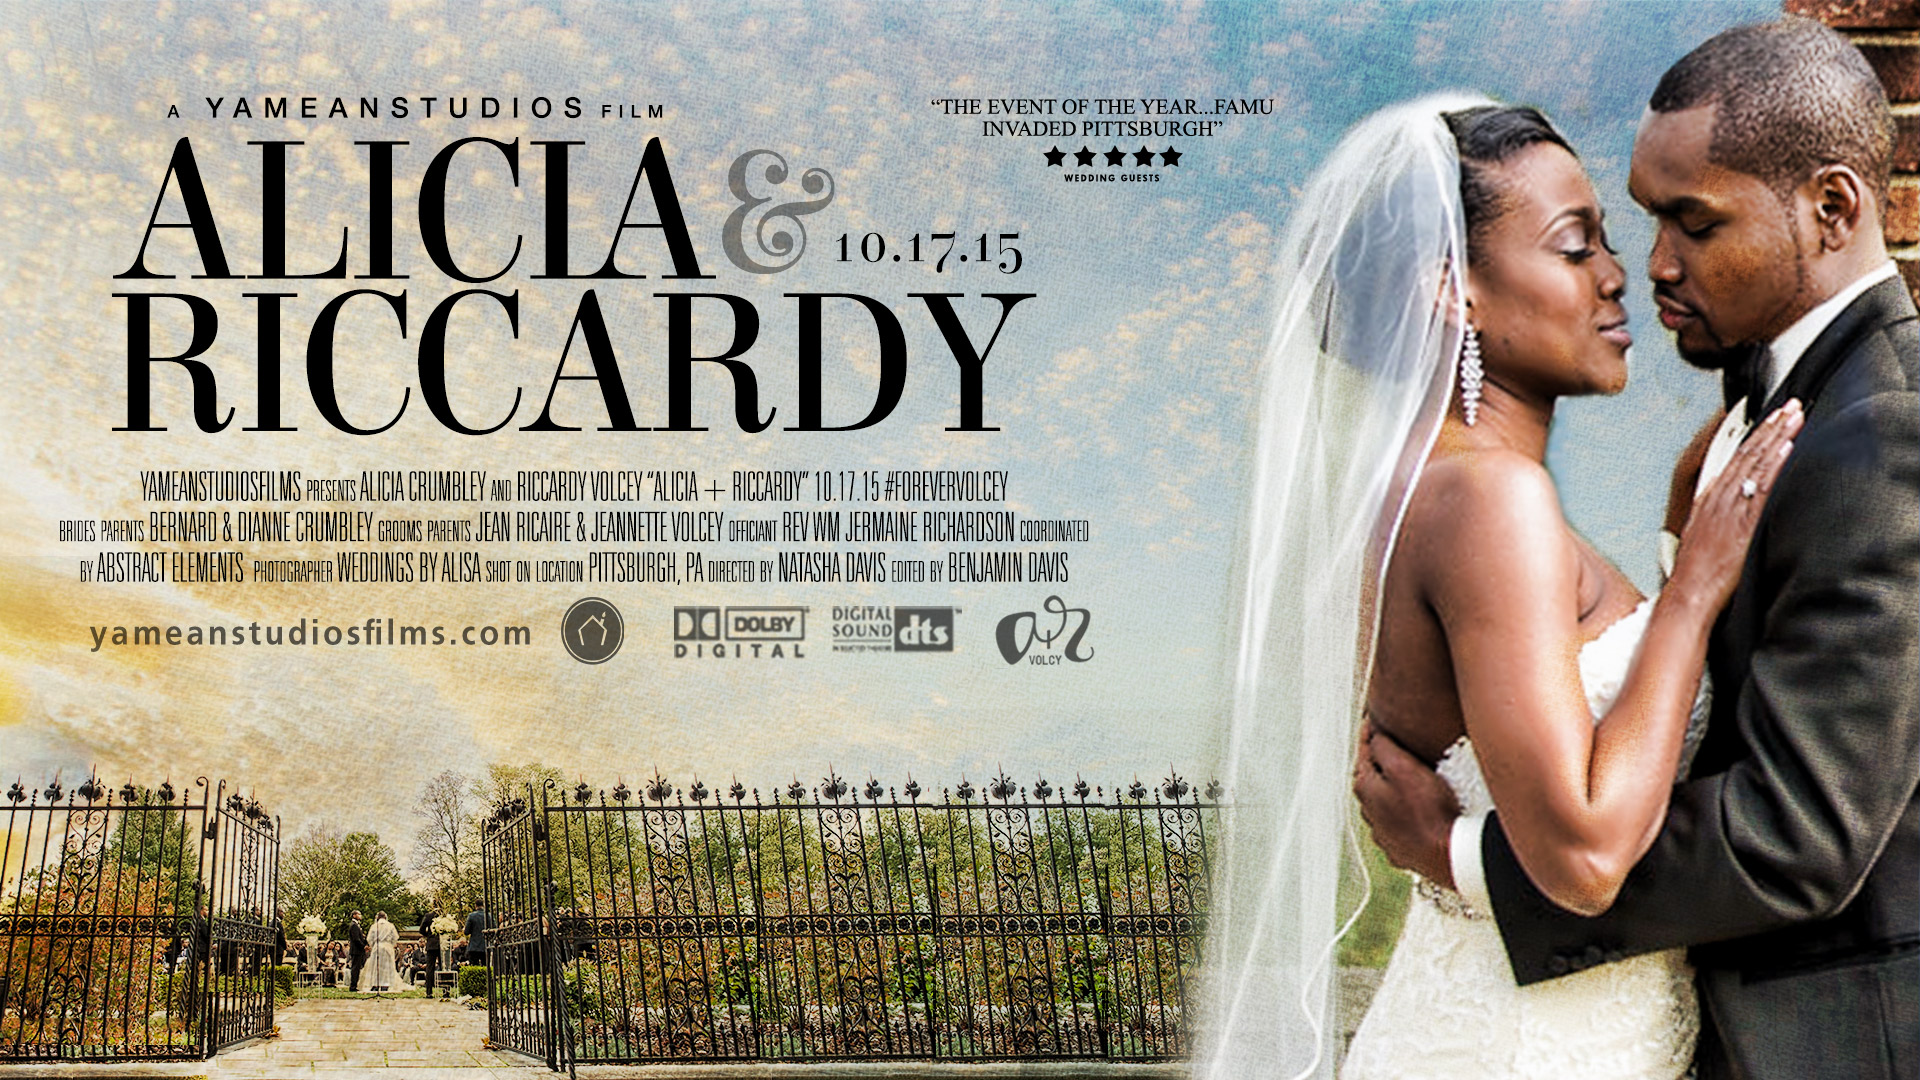 Romantic Garden Wedding in Pittsburgh, PA | Alicia + Riccardy | Wedding Trailer